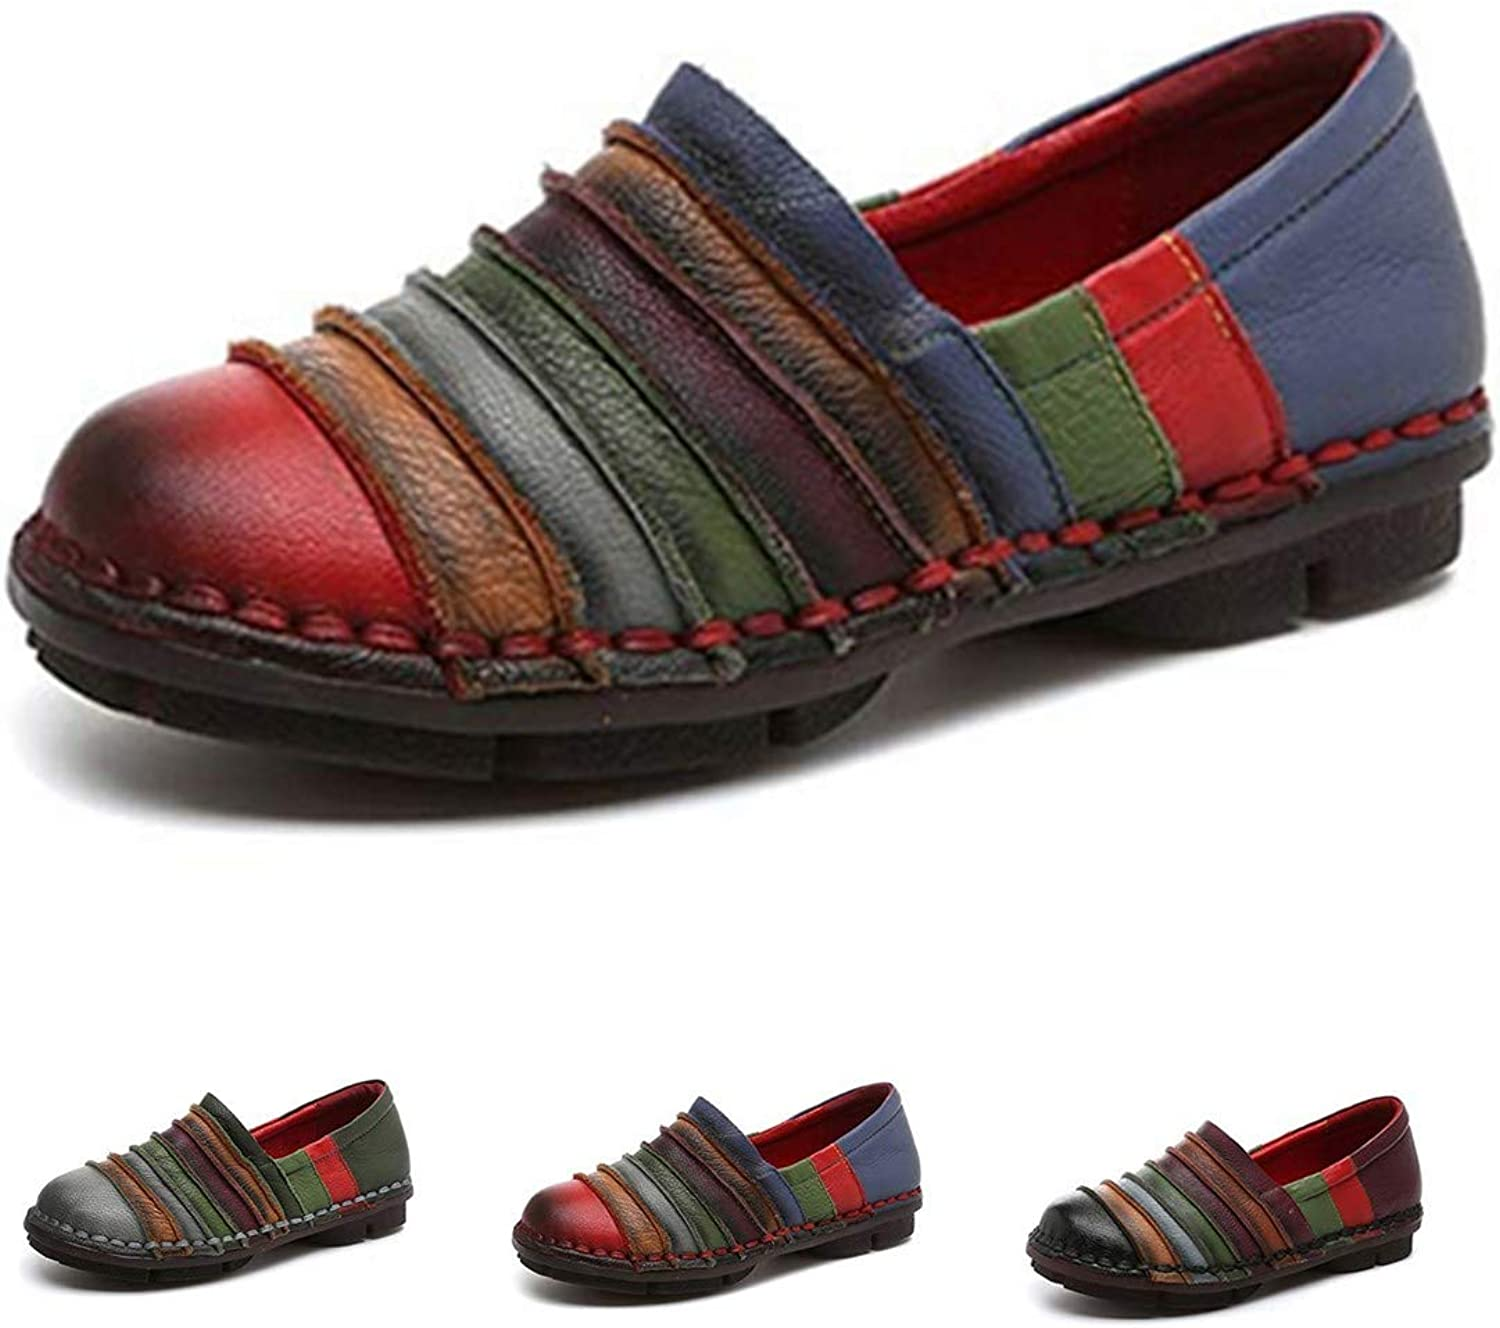 Socofy Slip-On Loafer, Women's Rainbow Leather Casual Loafer Flat Walking shoes Driving Loafers Moccasin Slippers